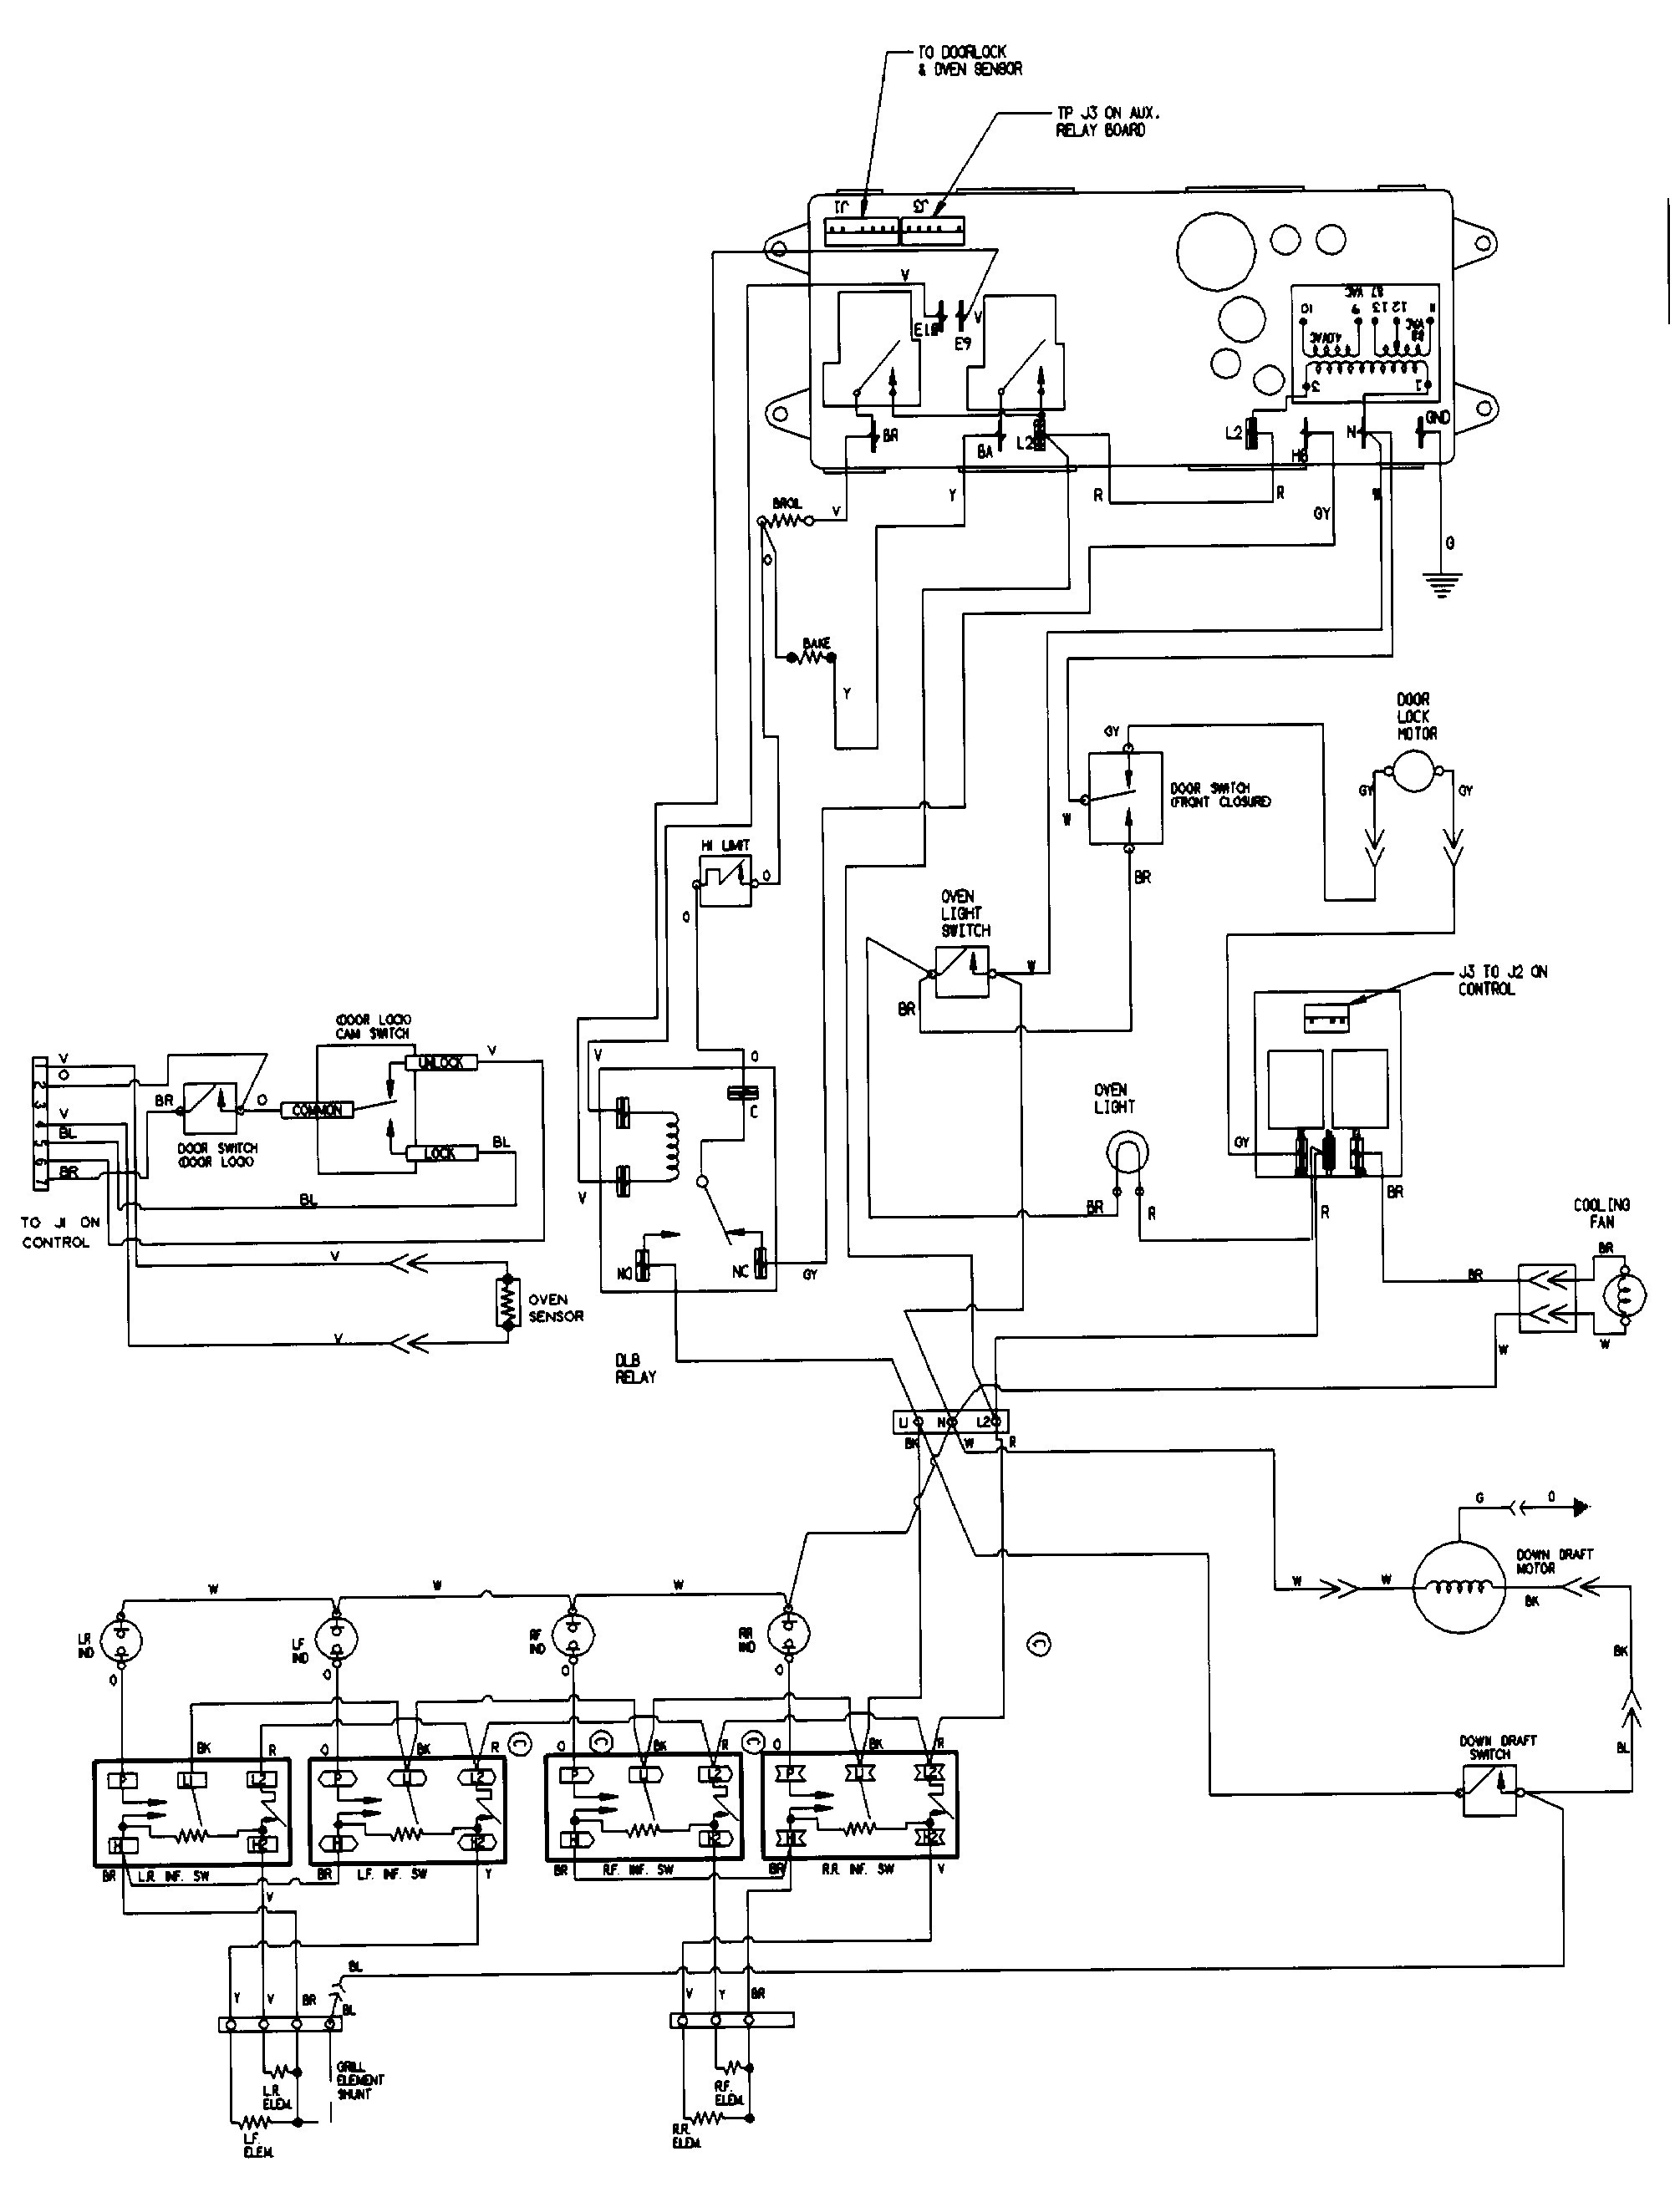 2001 suburban engine diagram